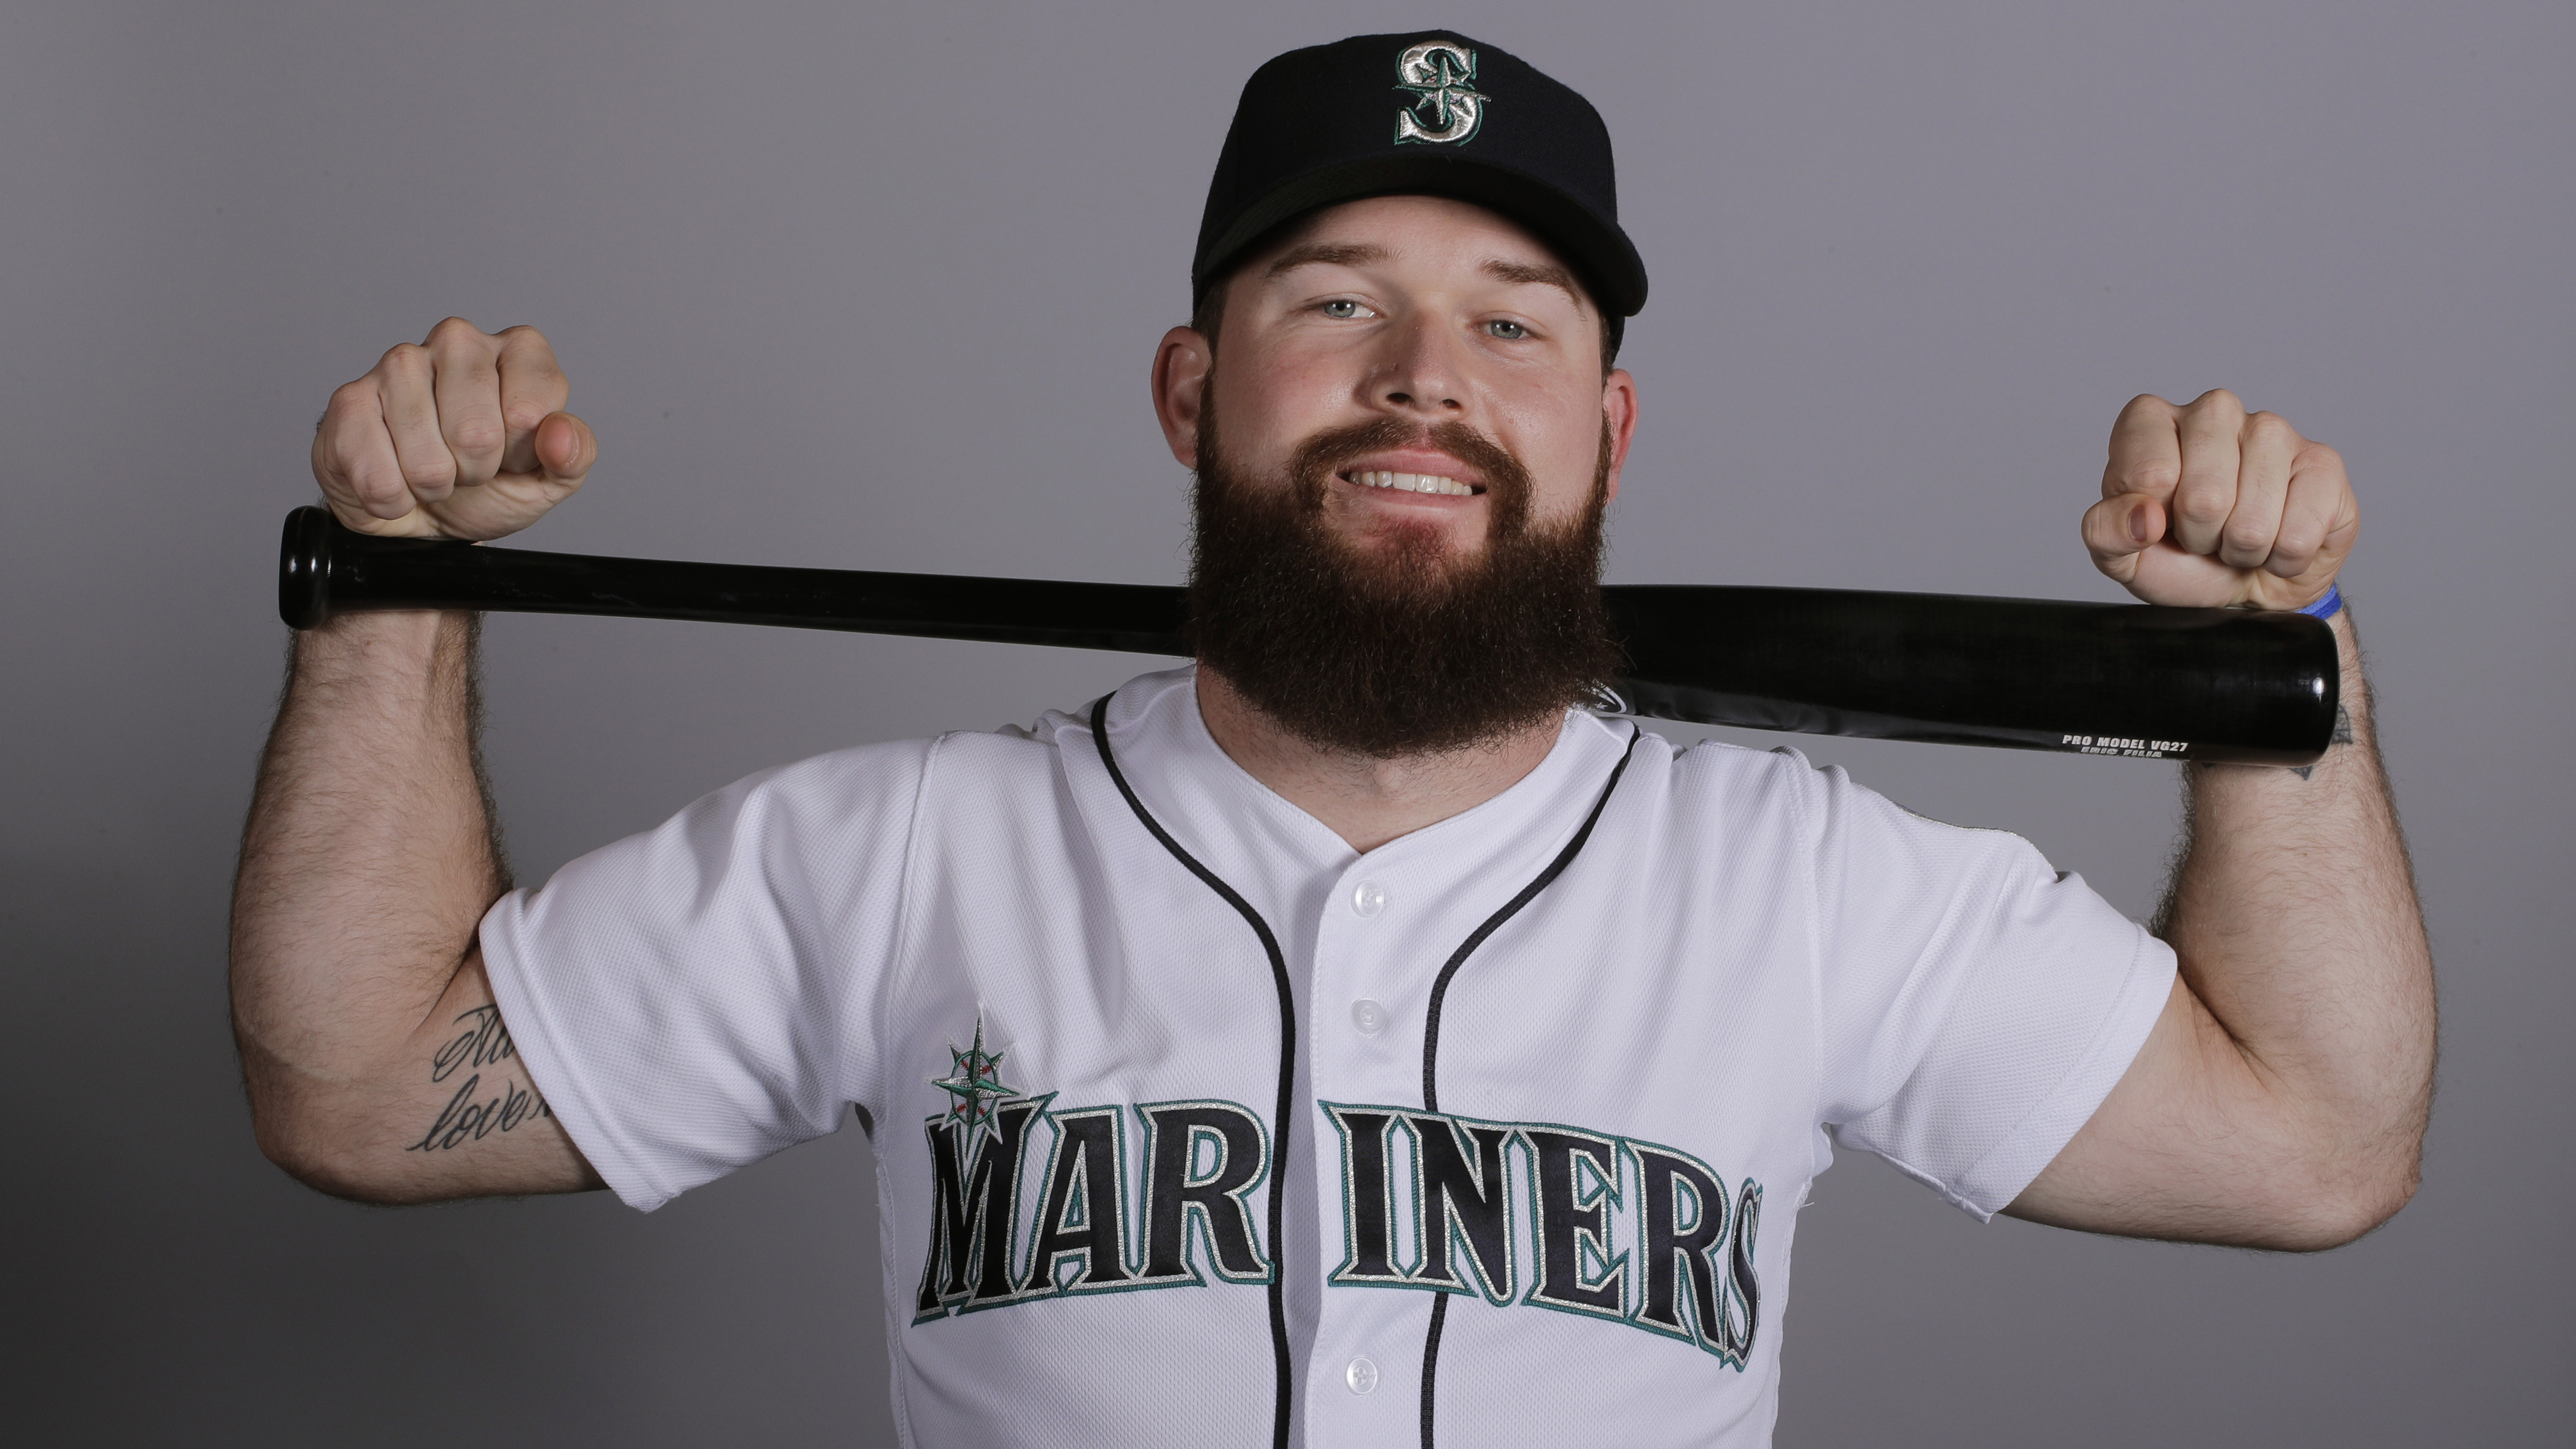 Mariners prospect suspended 100 games after failing drug of abuse test